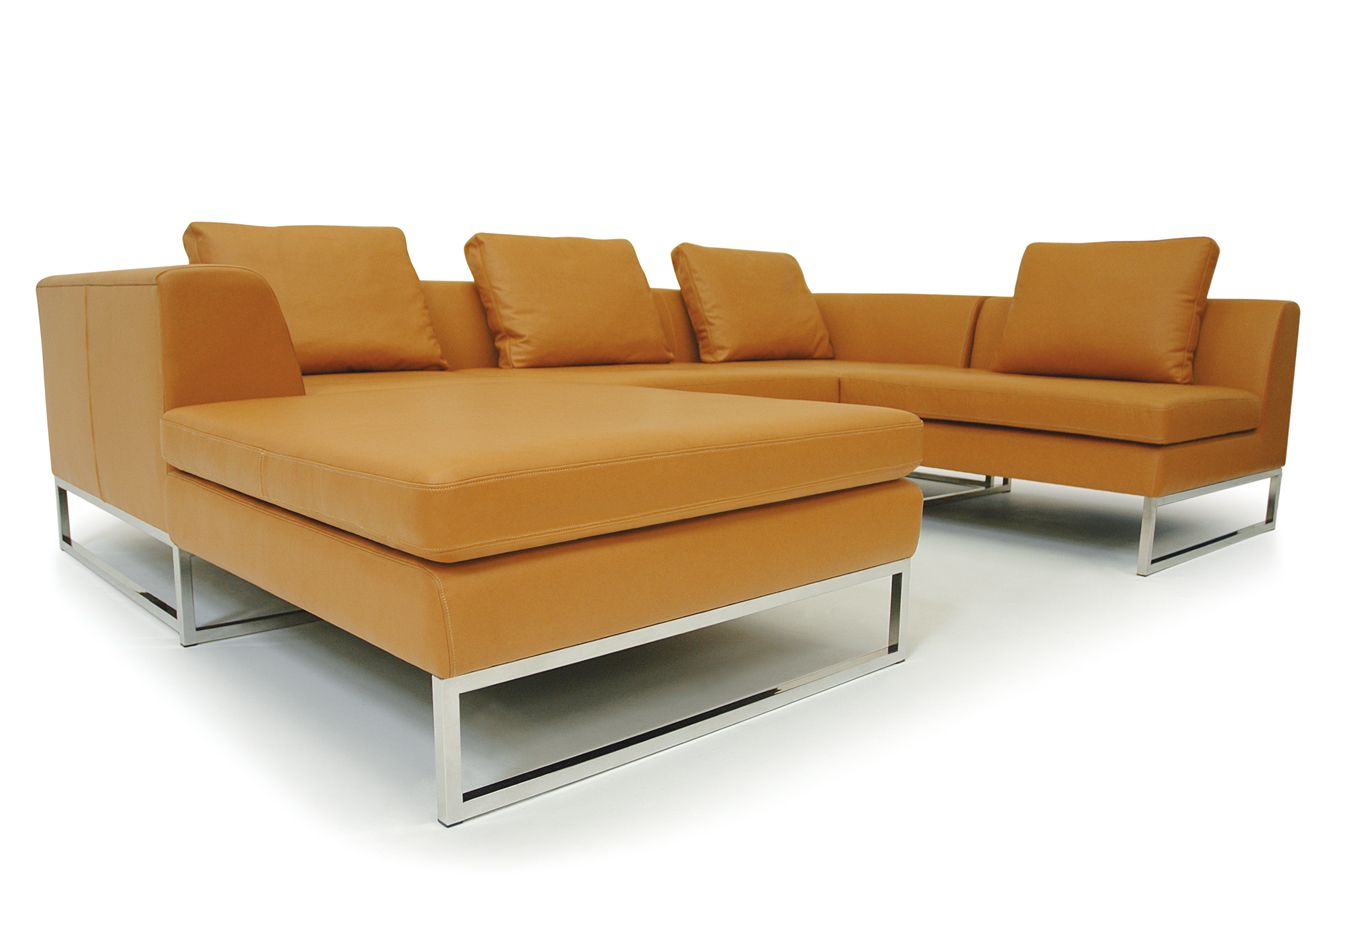 modular sofa  contemporary  leather  seater  haus  hb group - modular sofa  contemporary  leather  seater  haus